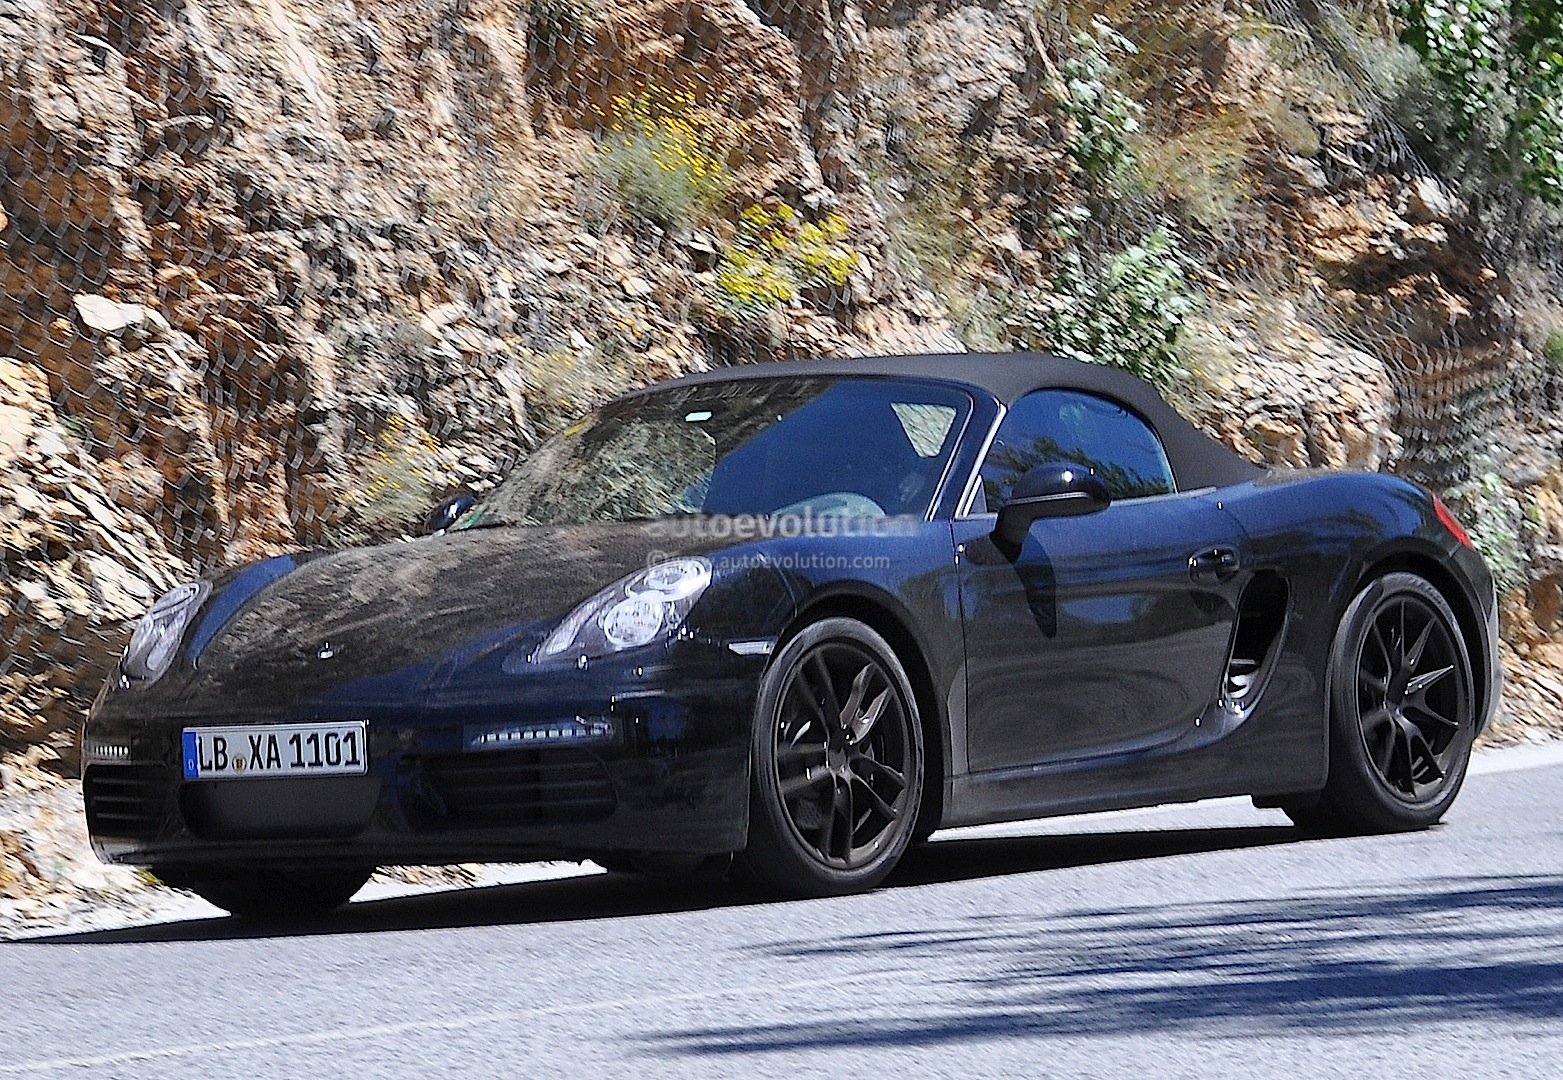 2016 - [Porsche] 718 Boxster & 718 Cayman [982] Porsche-boxster-facelift-prototype-spied-turbo-flat-four-engines-coming_2